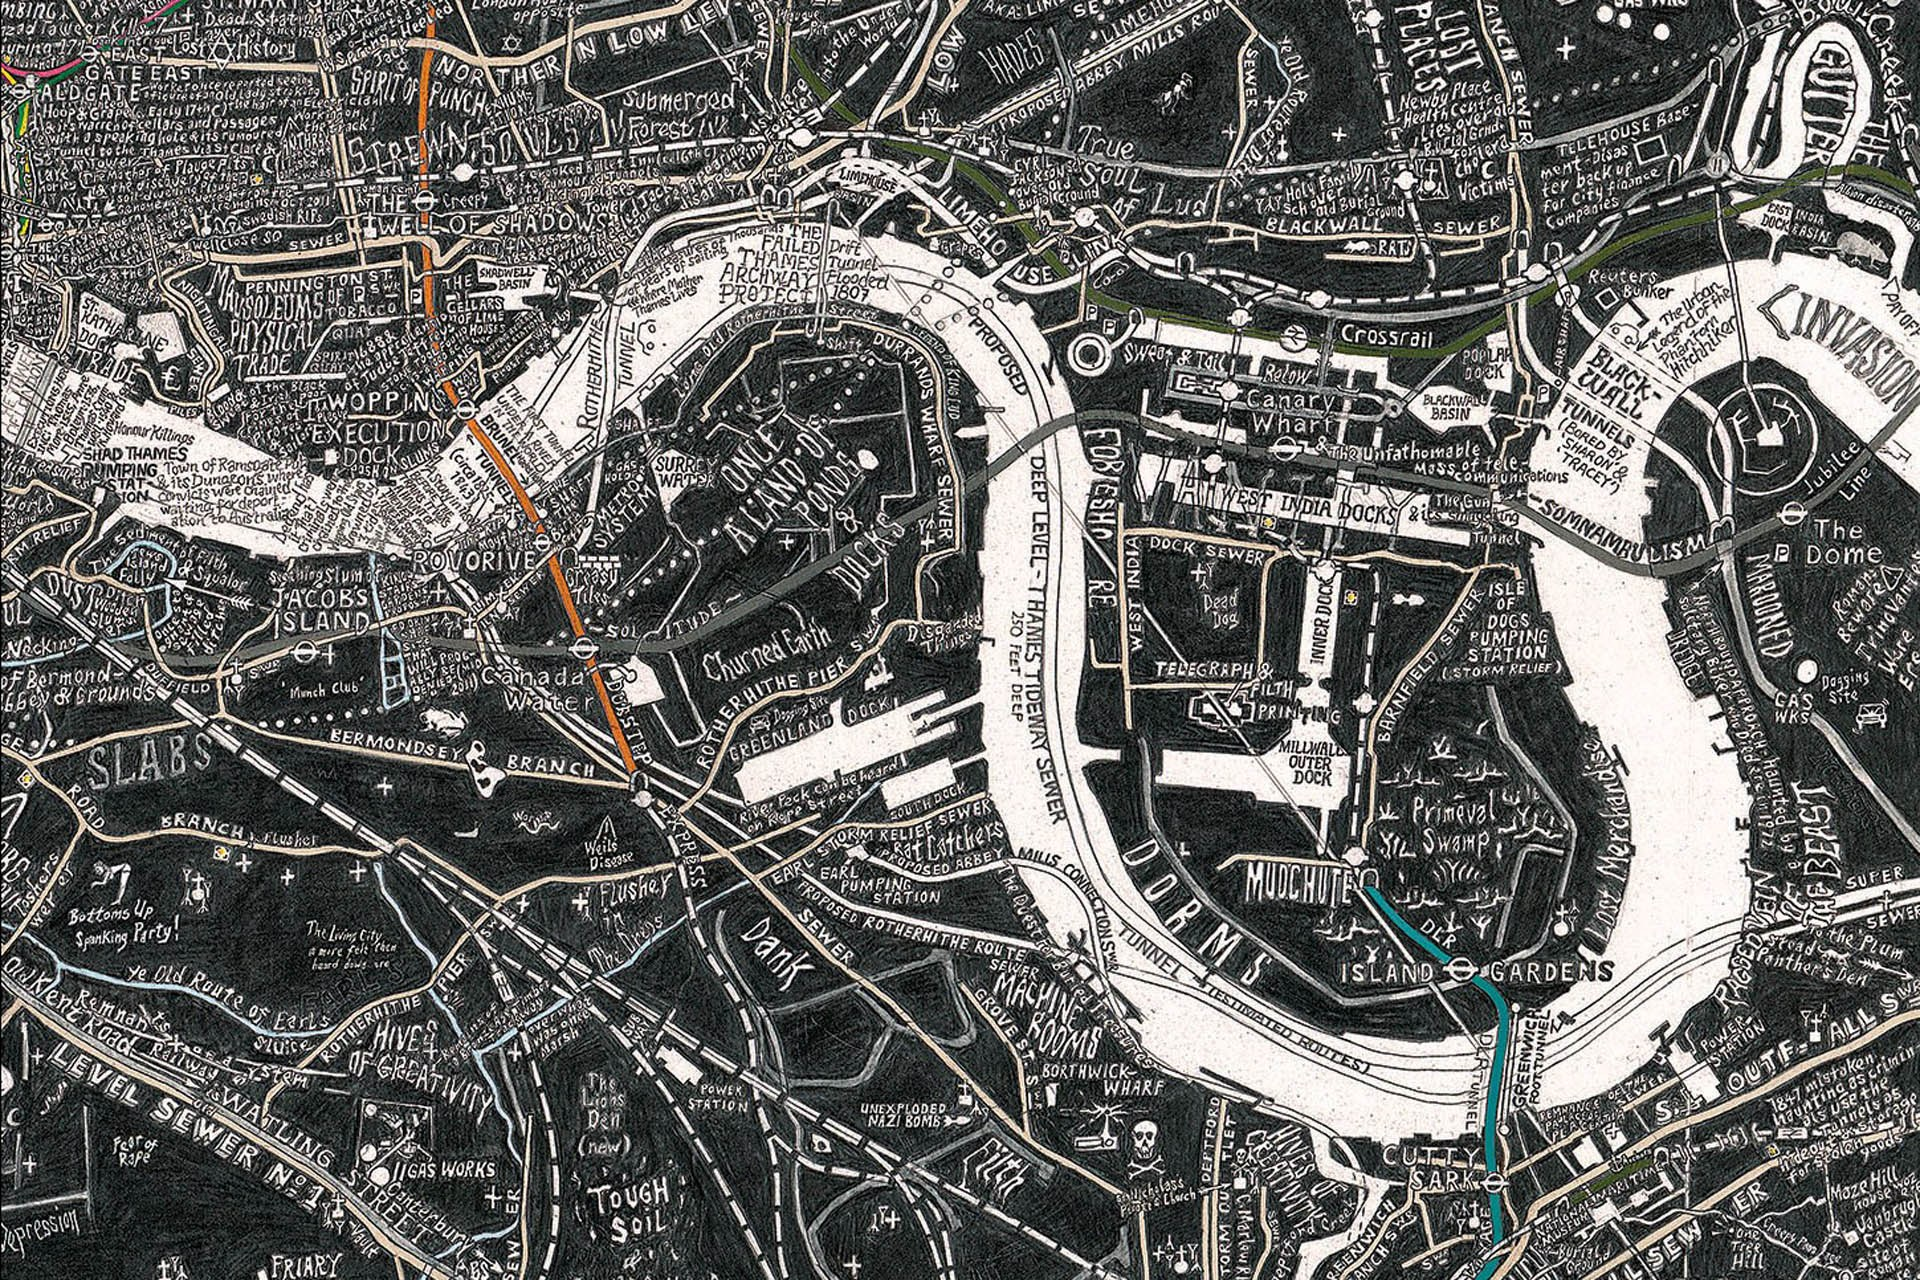 Exhibition Showcases Artists Highly Intricate Hand Drawn Maps